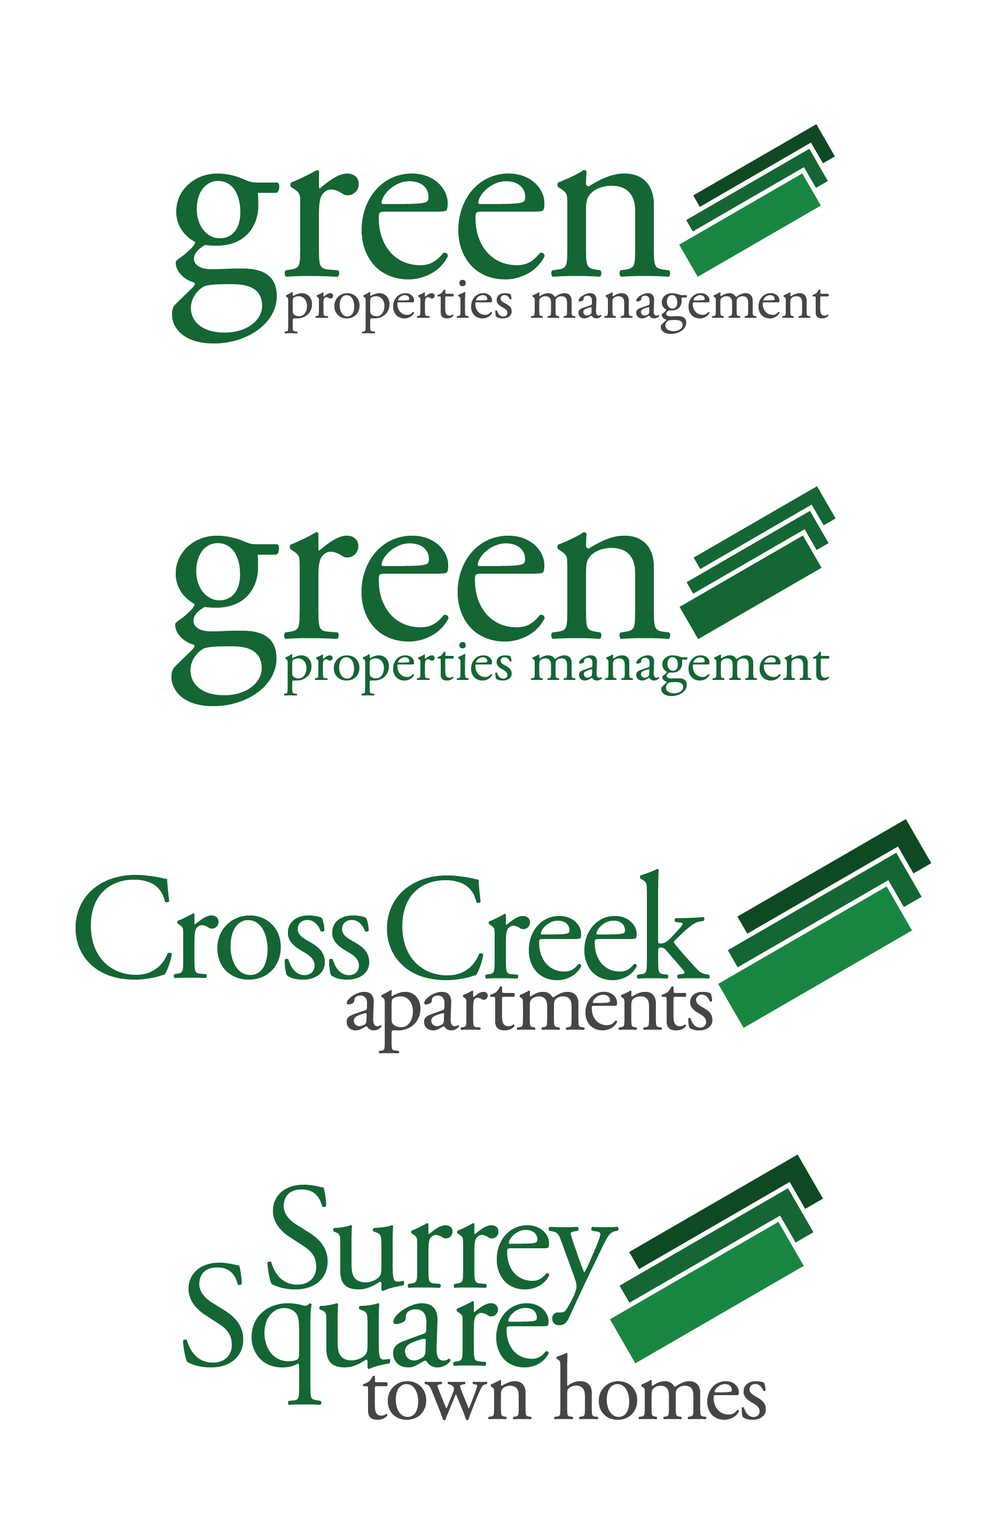 Brand & Logo Treatment - Green Properties    Illustrator   One of the first things I did for Green Properties was to create a new brand identity for the company and its properties. The parent company owns and manages two properties (Cross Creek Apartments and Surrey Square Town Homes).  I started with the Green Properties logo, including the 3-rectangle emblem, inspired partly by Lincoln Logs roof shingle blocks, and intended to show a company that is well-organized and precise. It was an intuitive, simple design, but one that lent itself well to a variety of interesting marketing materials based on the same angled blocks.  I then developed the property-specific logos as variations on the theme, with a recognizably consistent type, but their own overall shapes. We wanted people to understand that these properties belonged together, but to maintain separate identities and ensure recognition of the signs from the street.  This brand has been in use for over 4 years, and has been well-suited to the business and properties.   More information and images about my time at Green Properties .